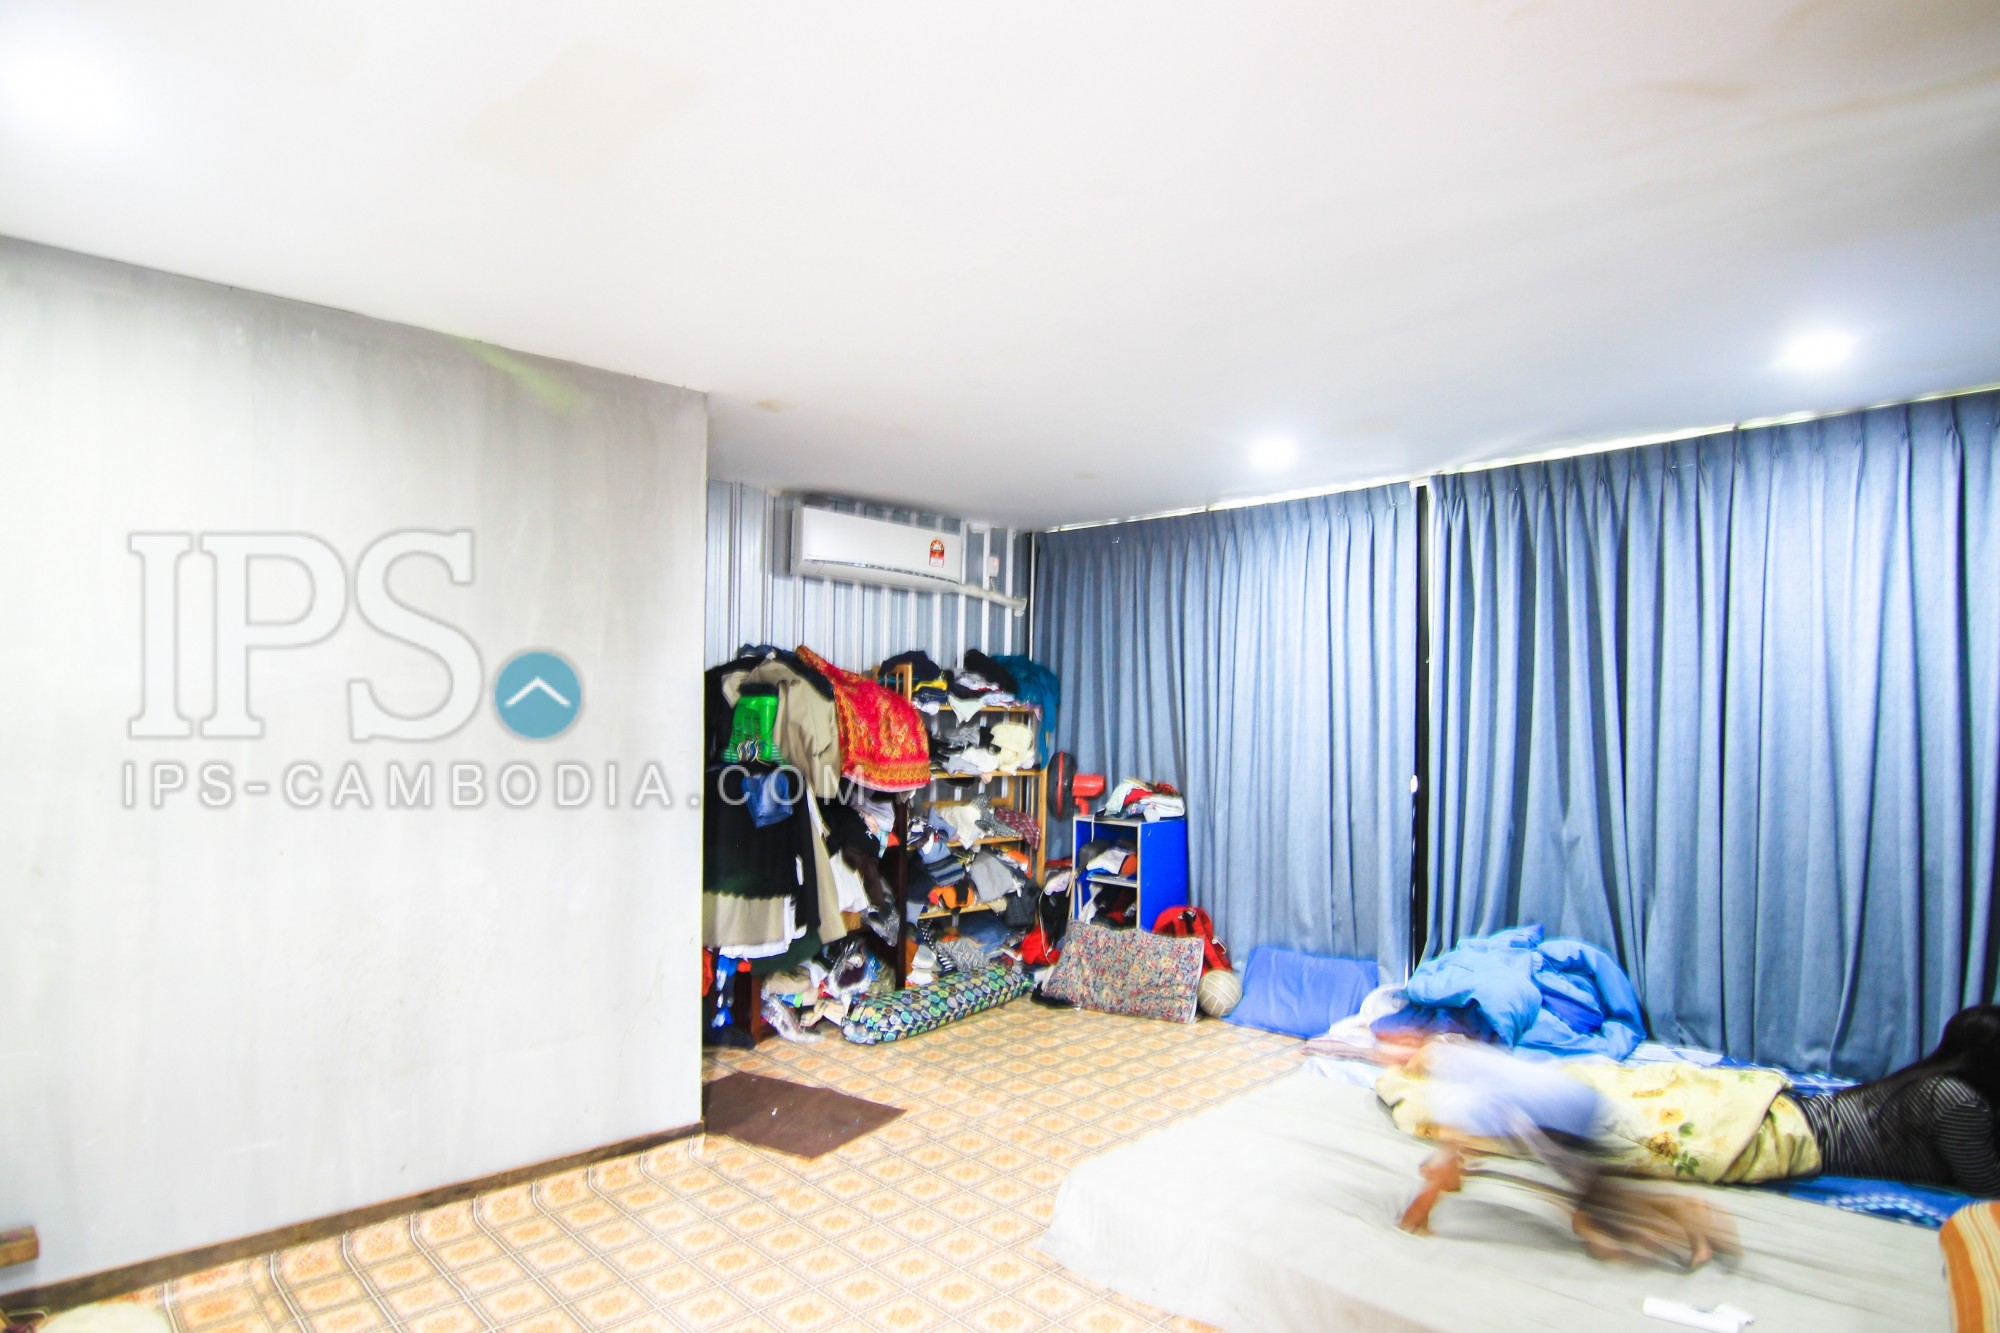 15 Bedrooms Apartment for Sale - Toul Tumpong